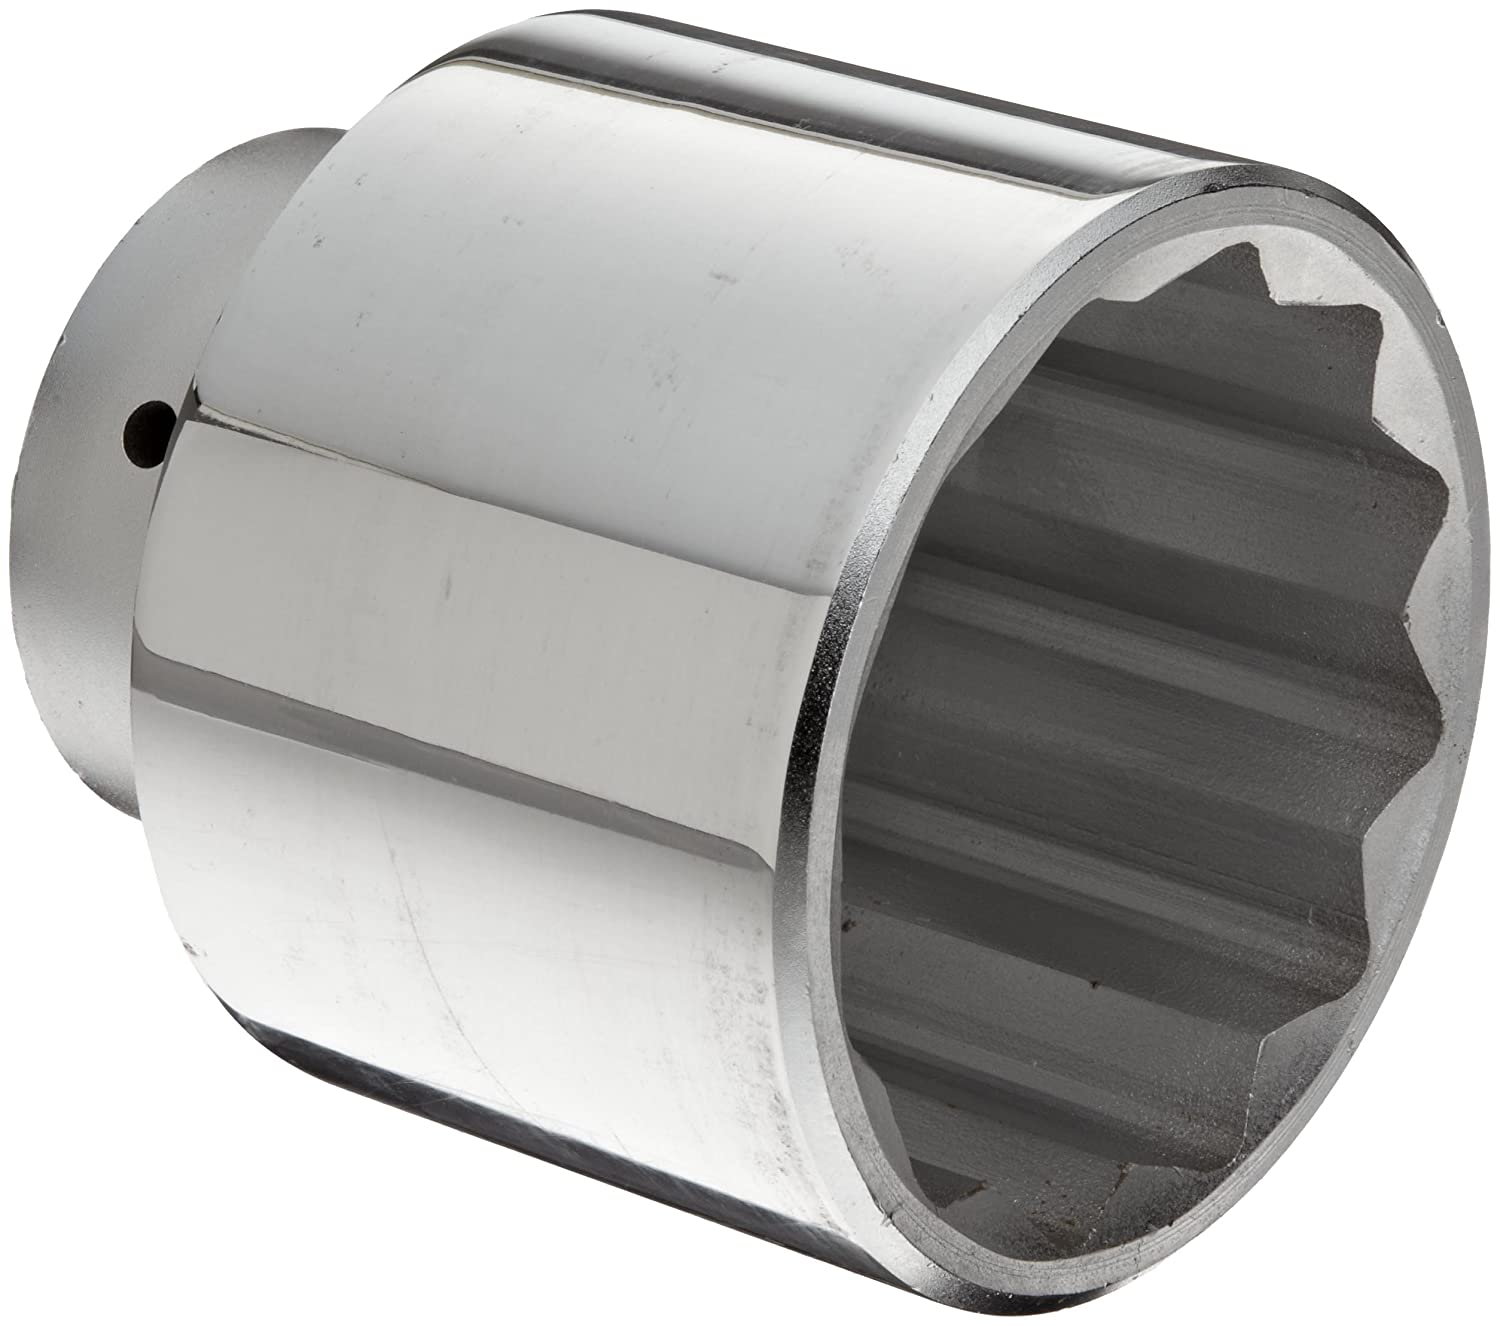 Martin X1296 Forged Alloy Steel 3 Type III Opening 1 Power Impact Square Drive Socket, 12 Points Standard, 3-15/16 Overall Length, Chrome Finish by Martin B002M8ZZ6C